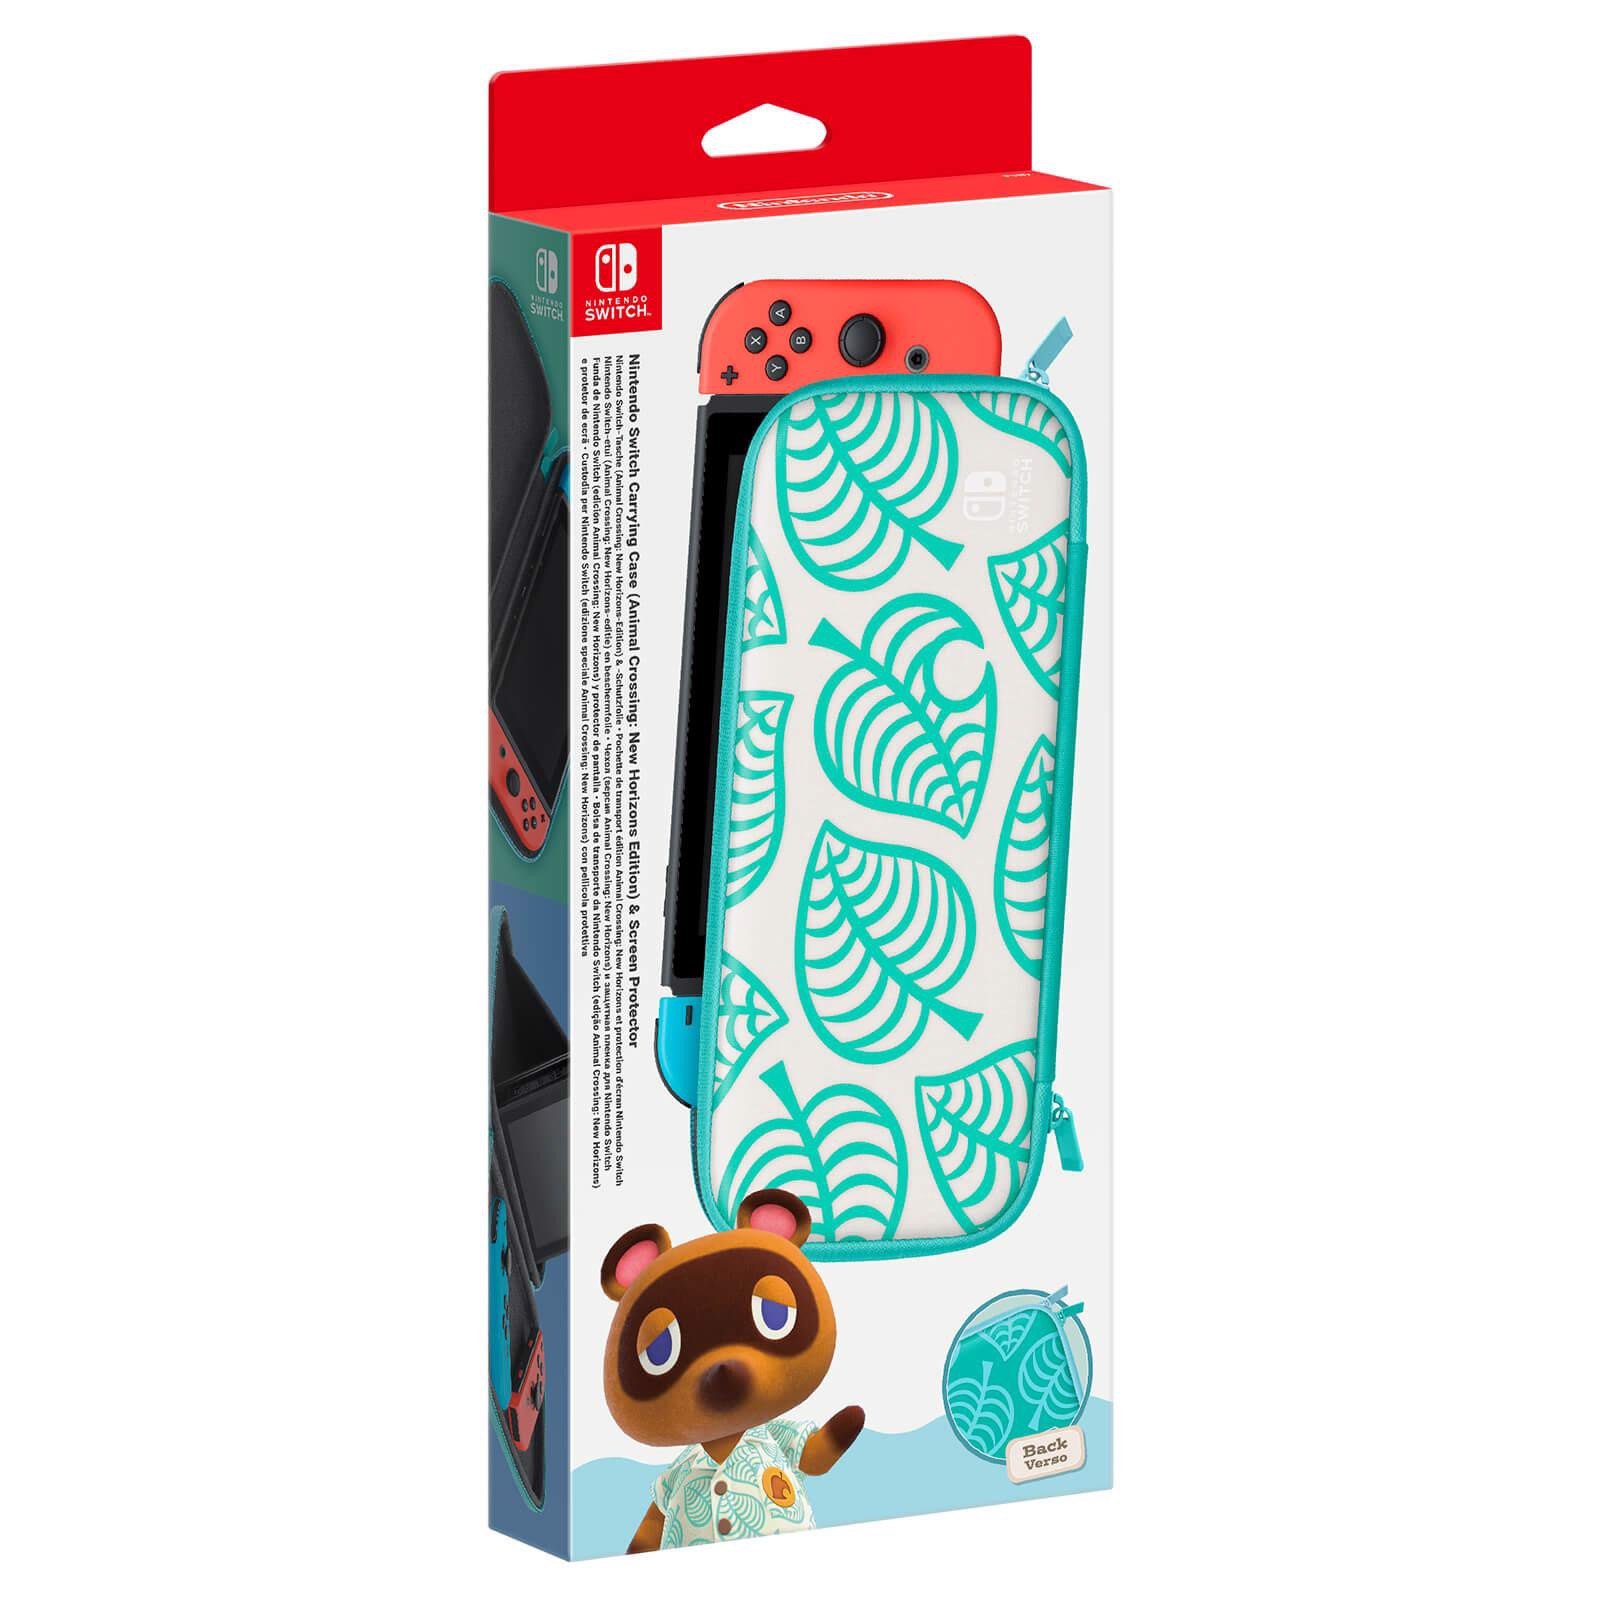 Nintendo Switch Pouch - Animal Crossing: